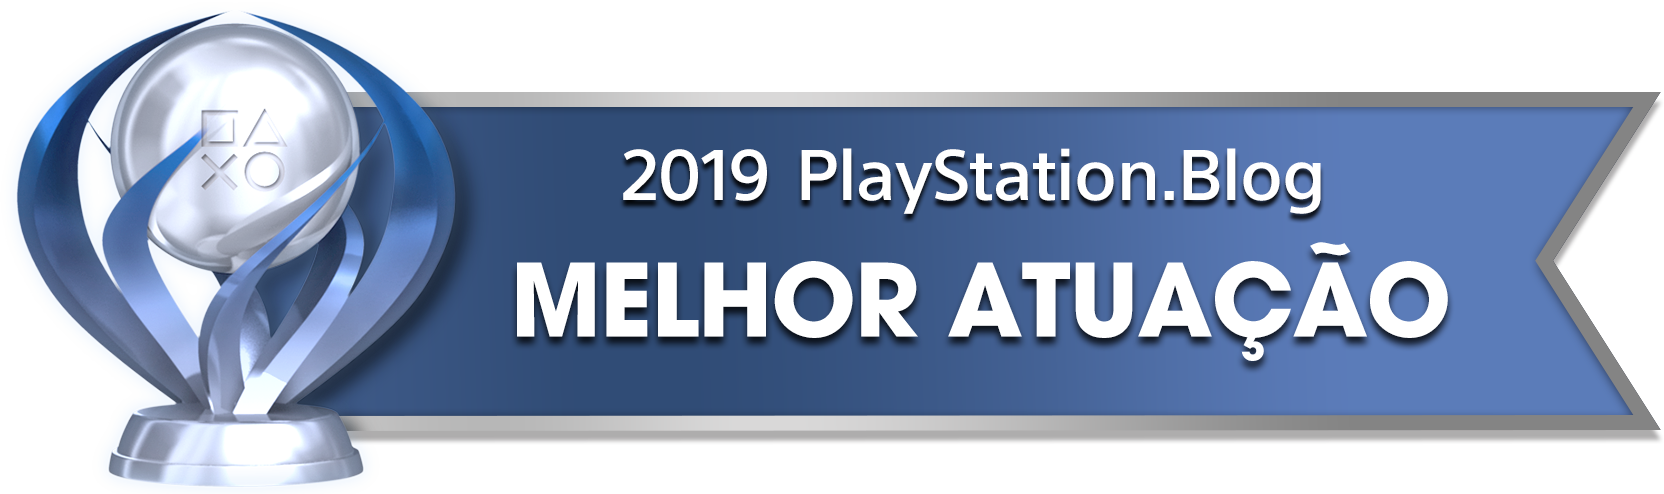 PS Blog Game of the Year 2019 - Best Performance - 1 - Platinum